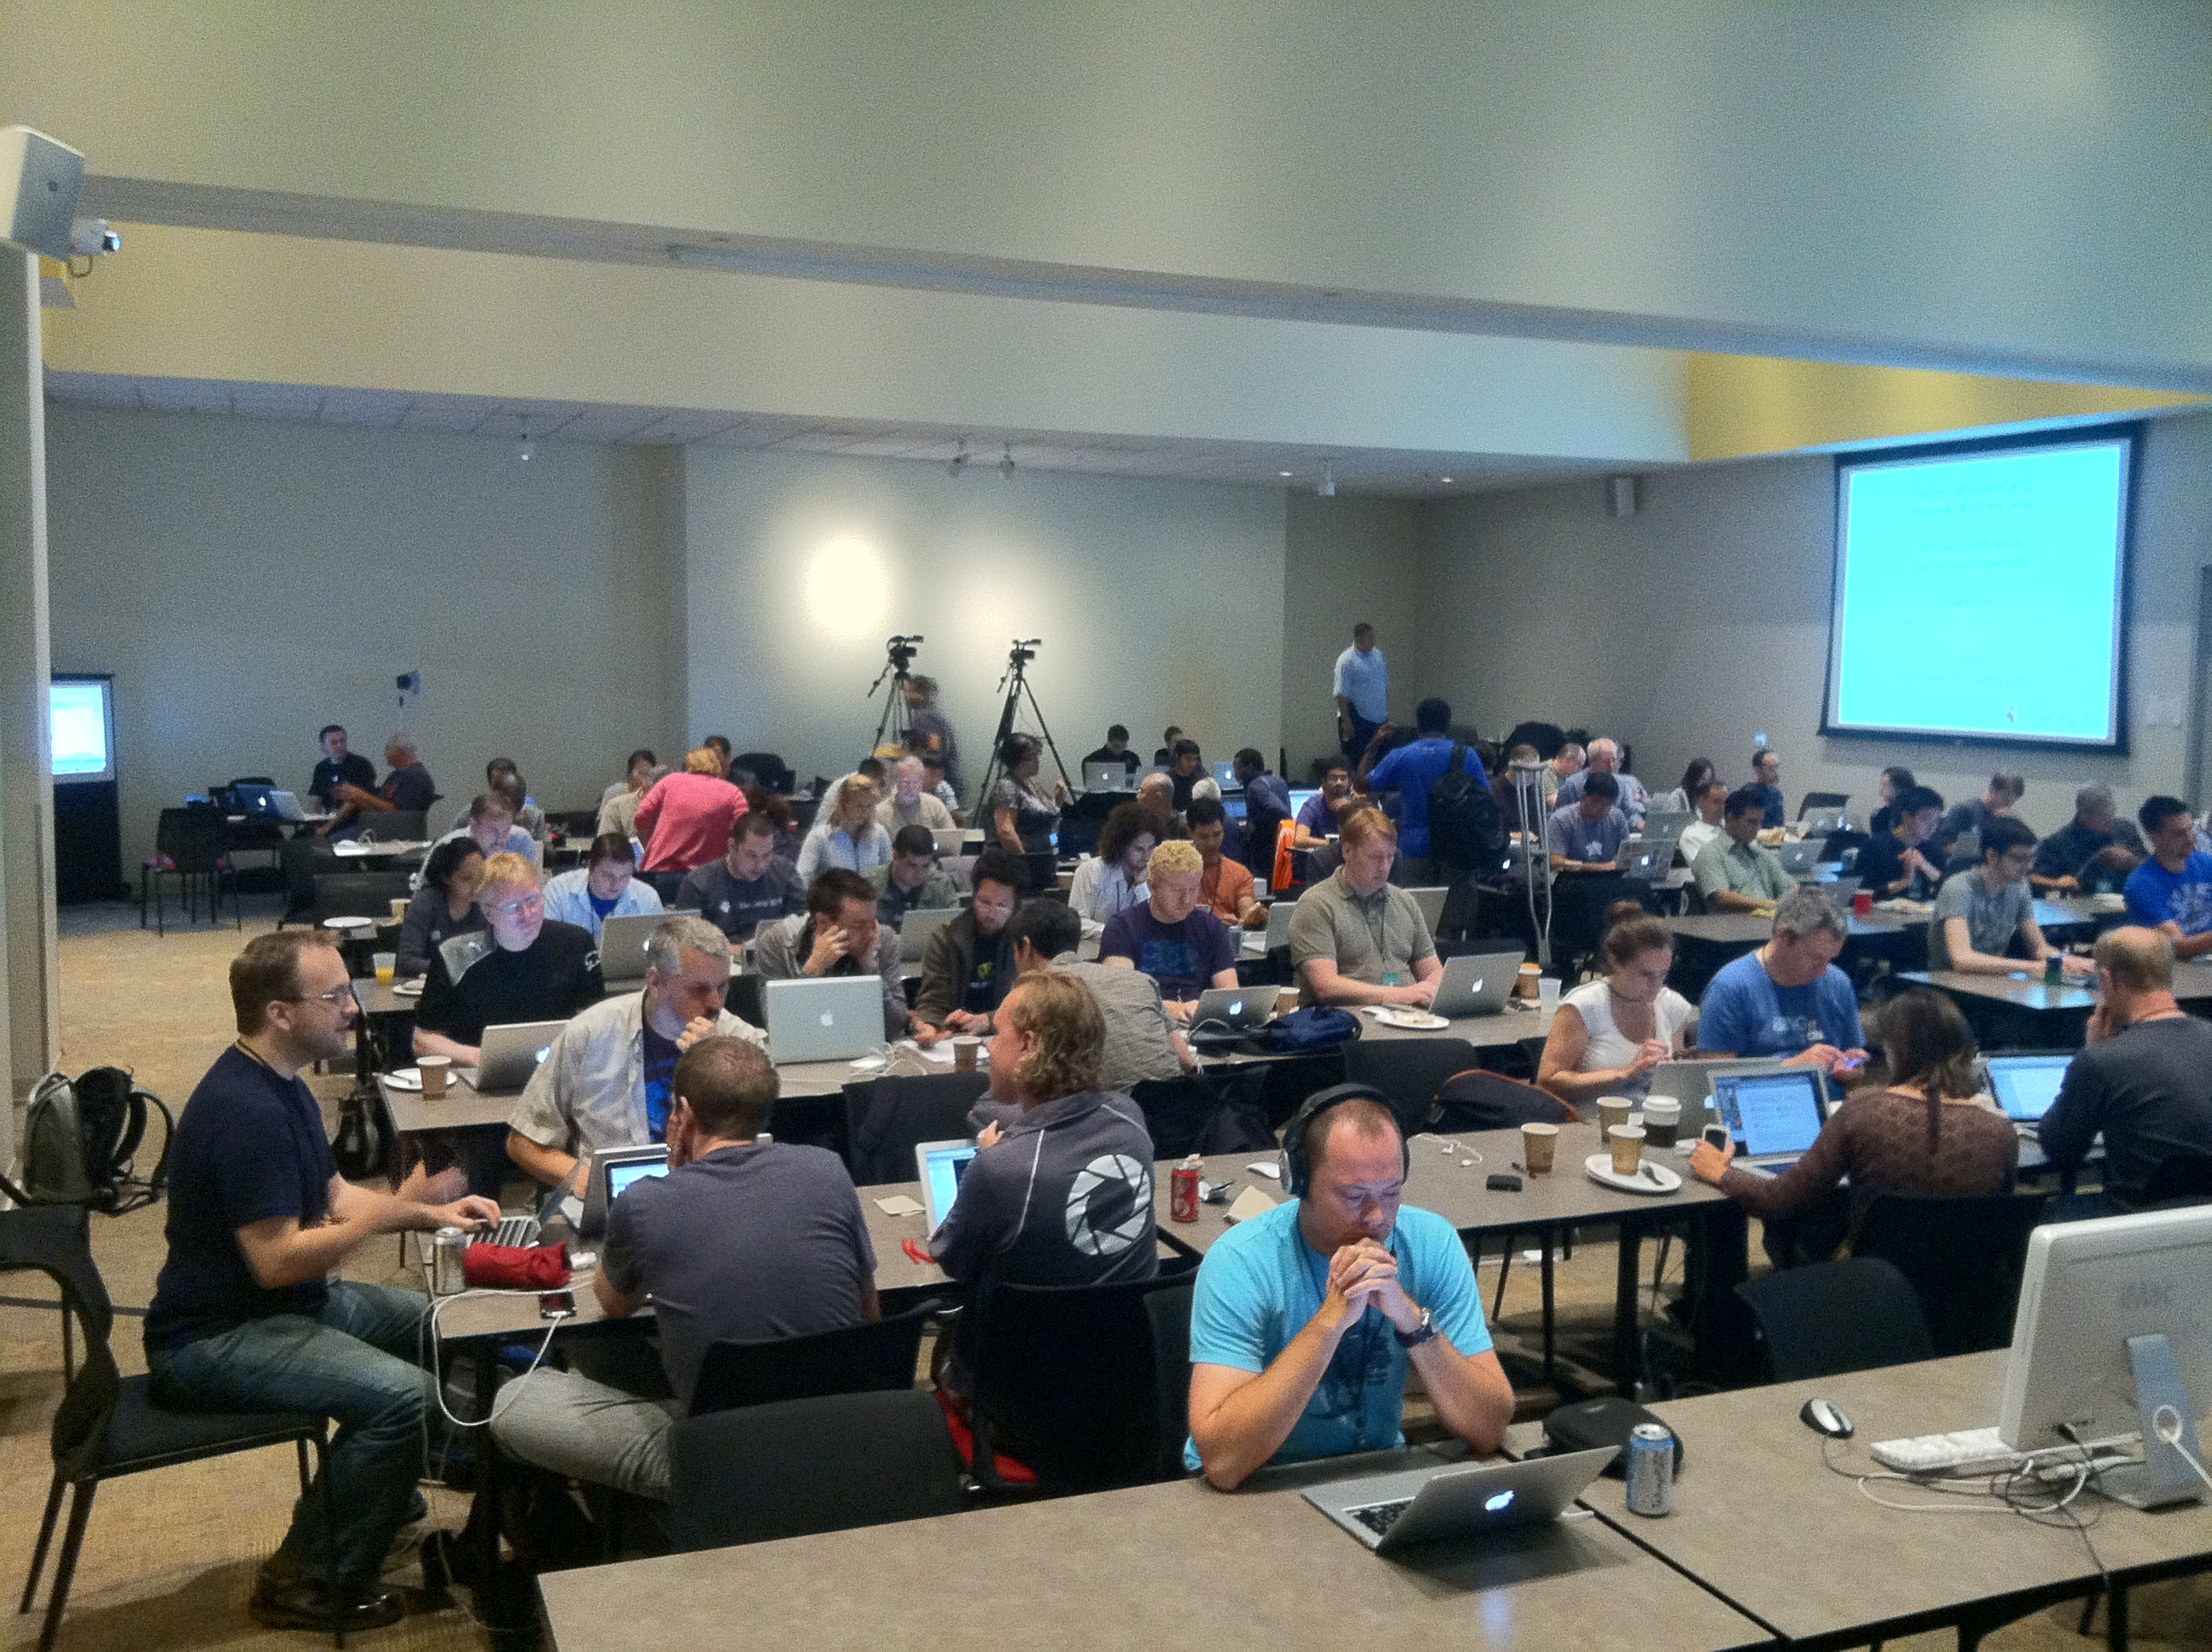 Build an app over the weekend! iOSDevCamp is on ...